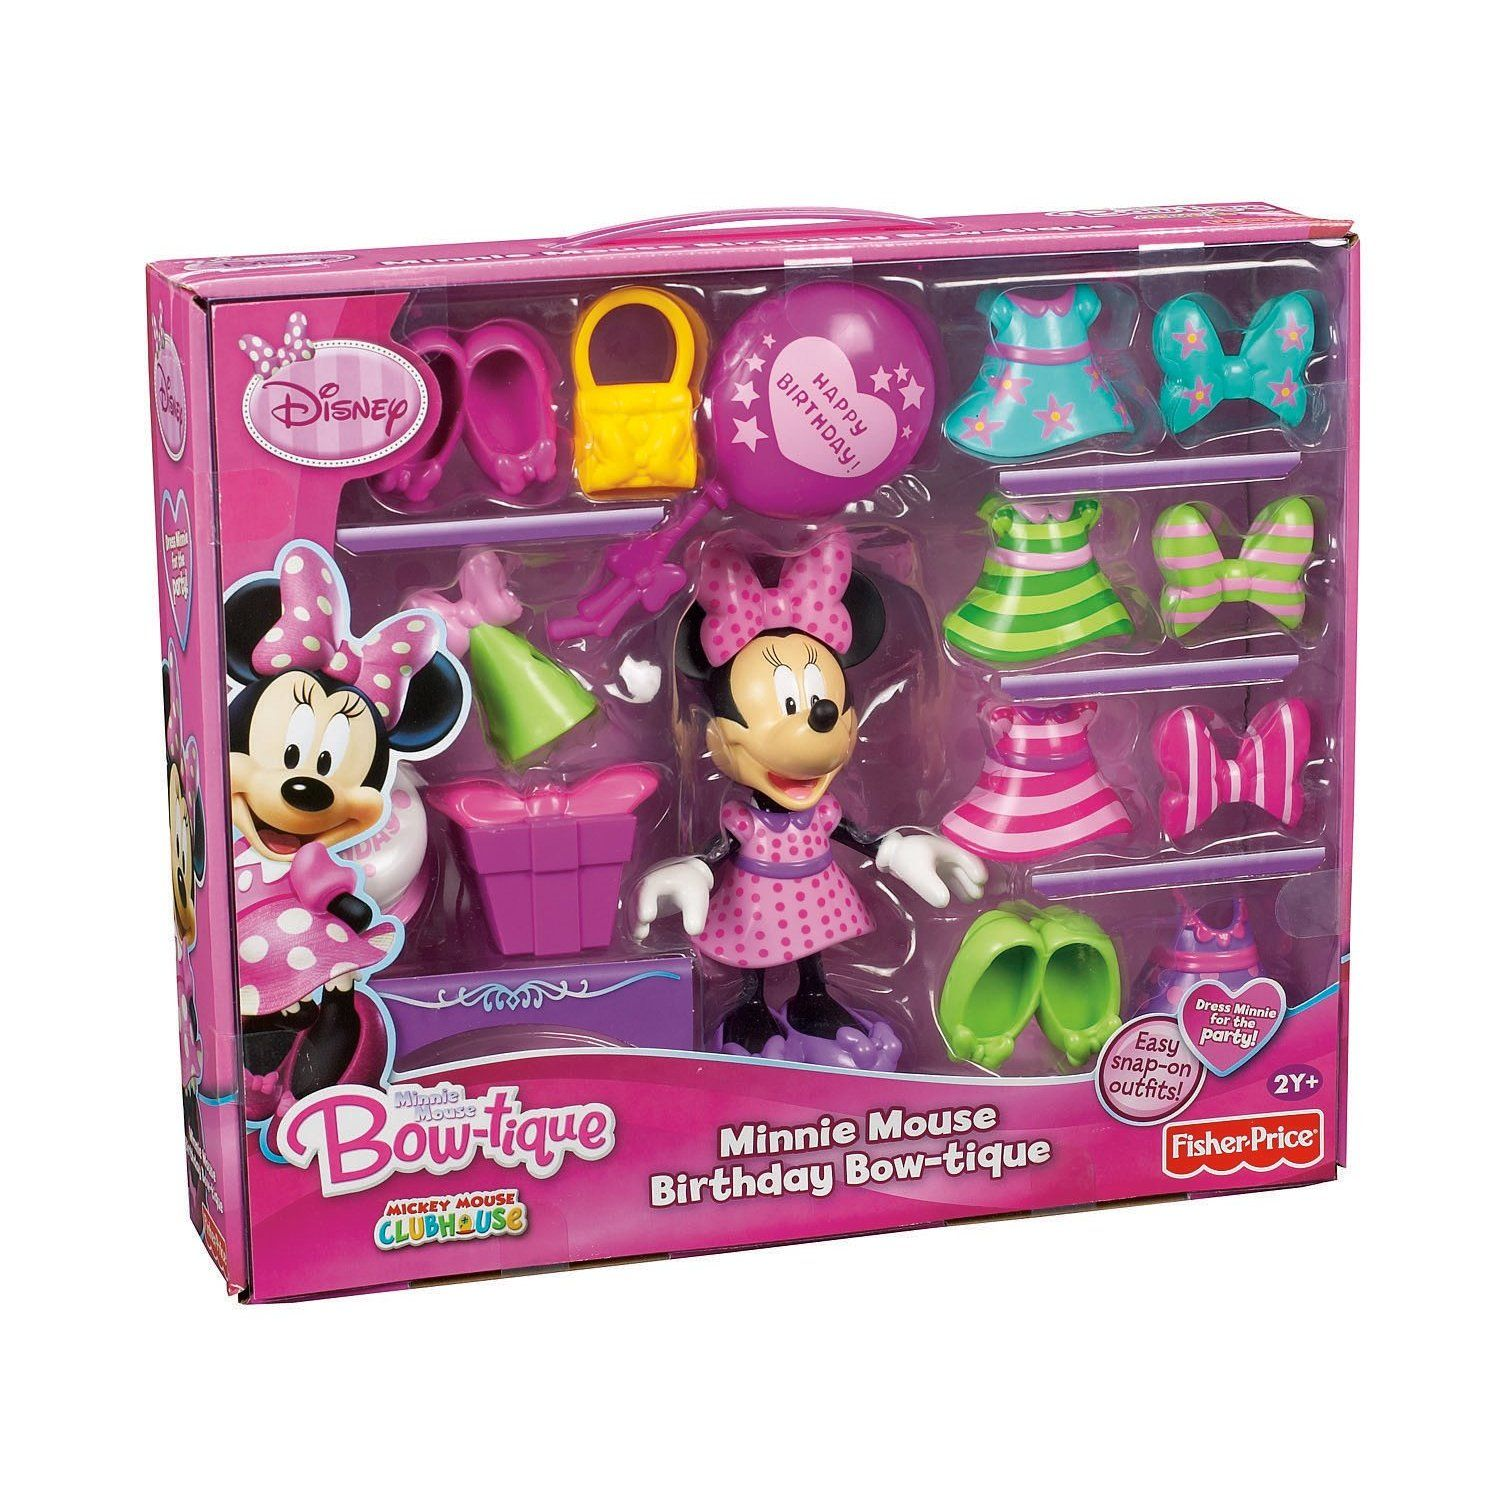 FisherPrice Disney's Birthday Bowtique Minnie Mouse